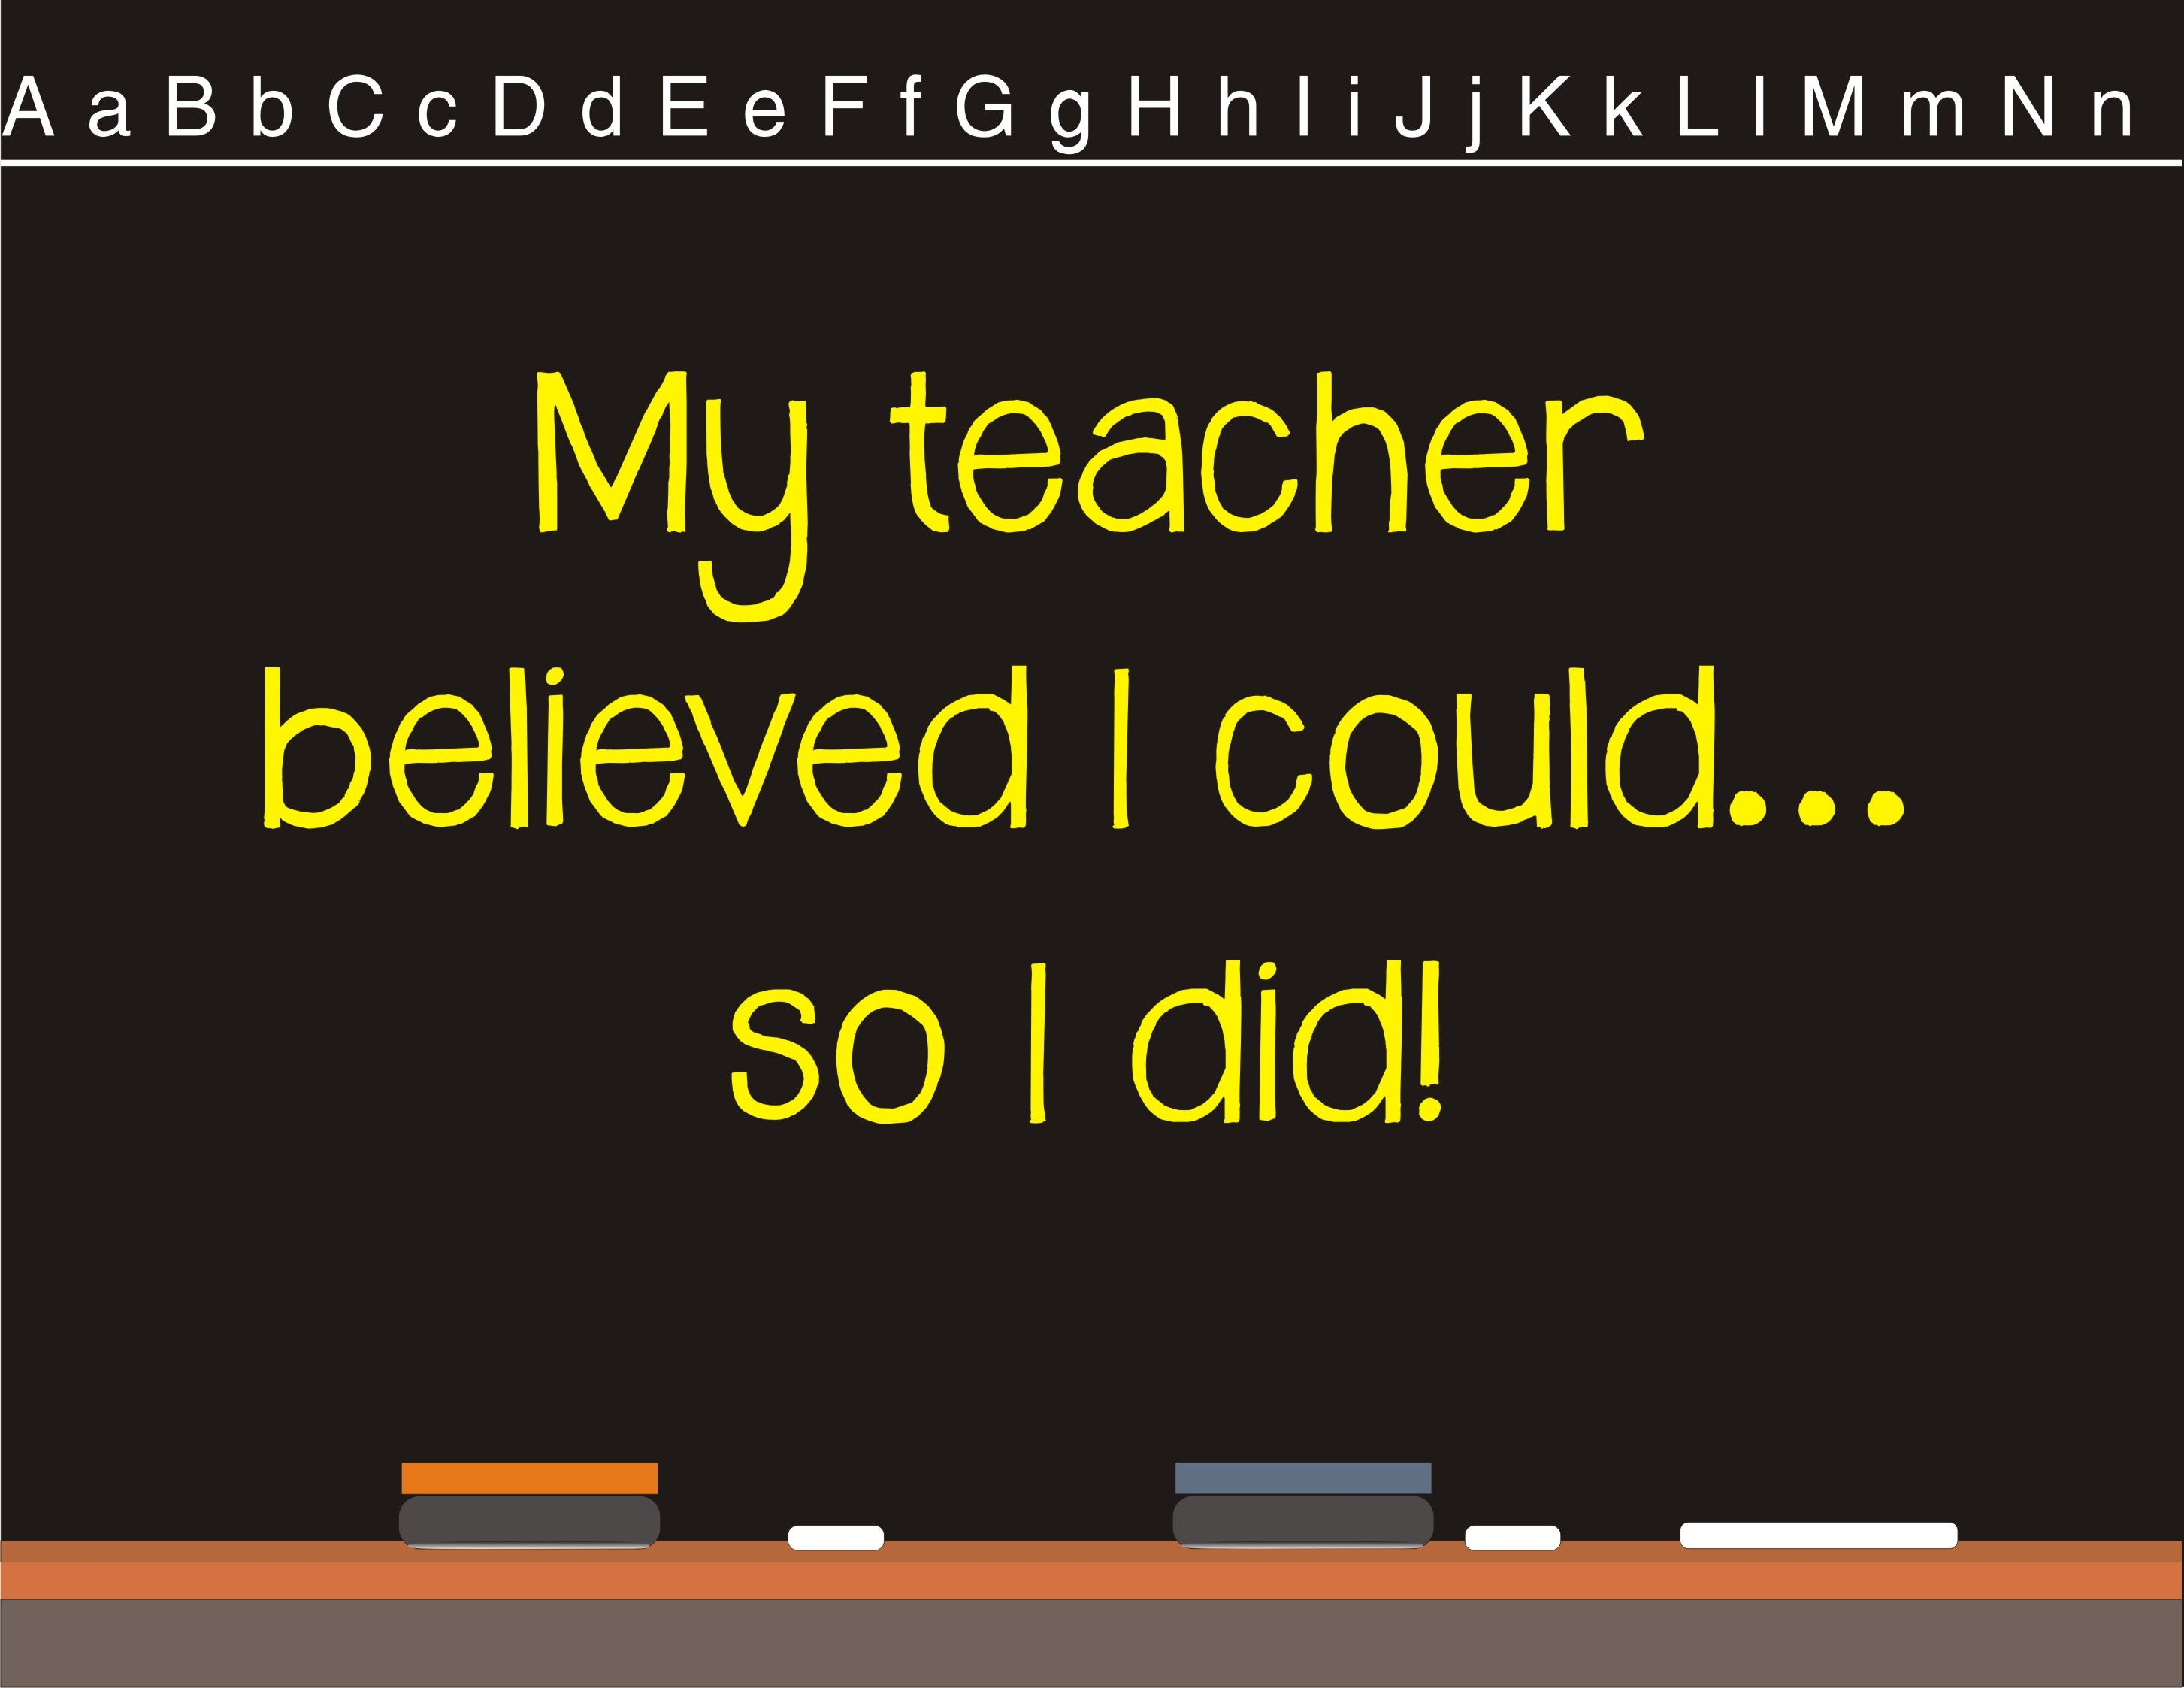 My teacher believed I could so I did